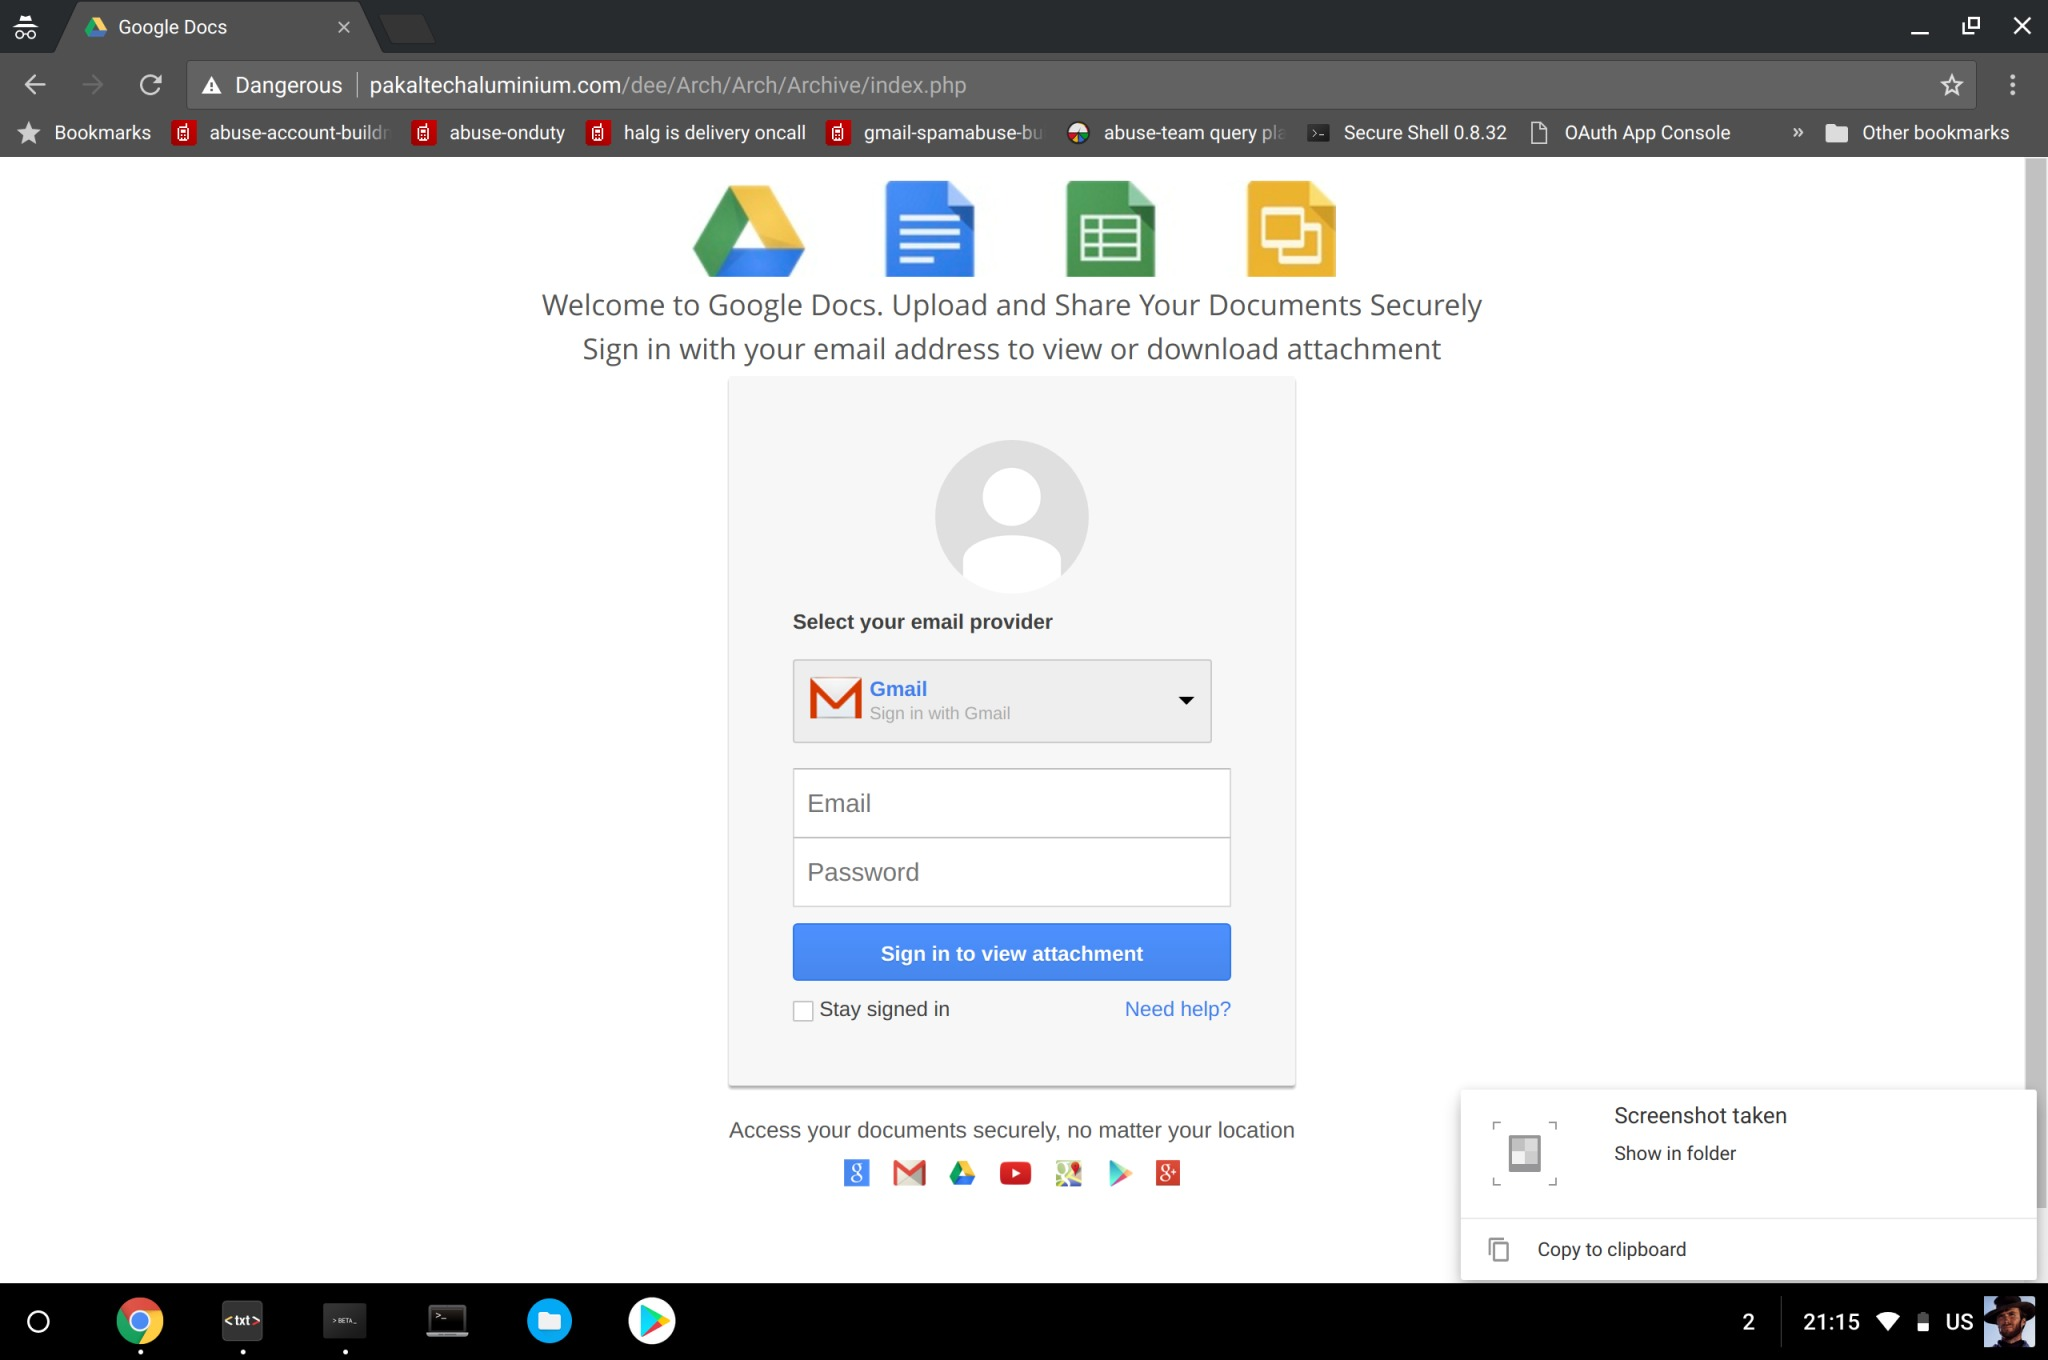 Google testa l'integrazione di account di terze parti in Gmail su iOS